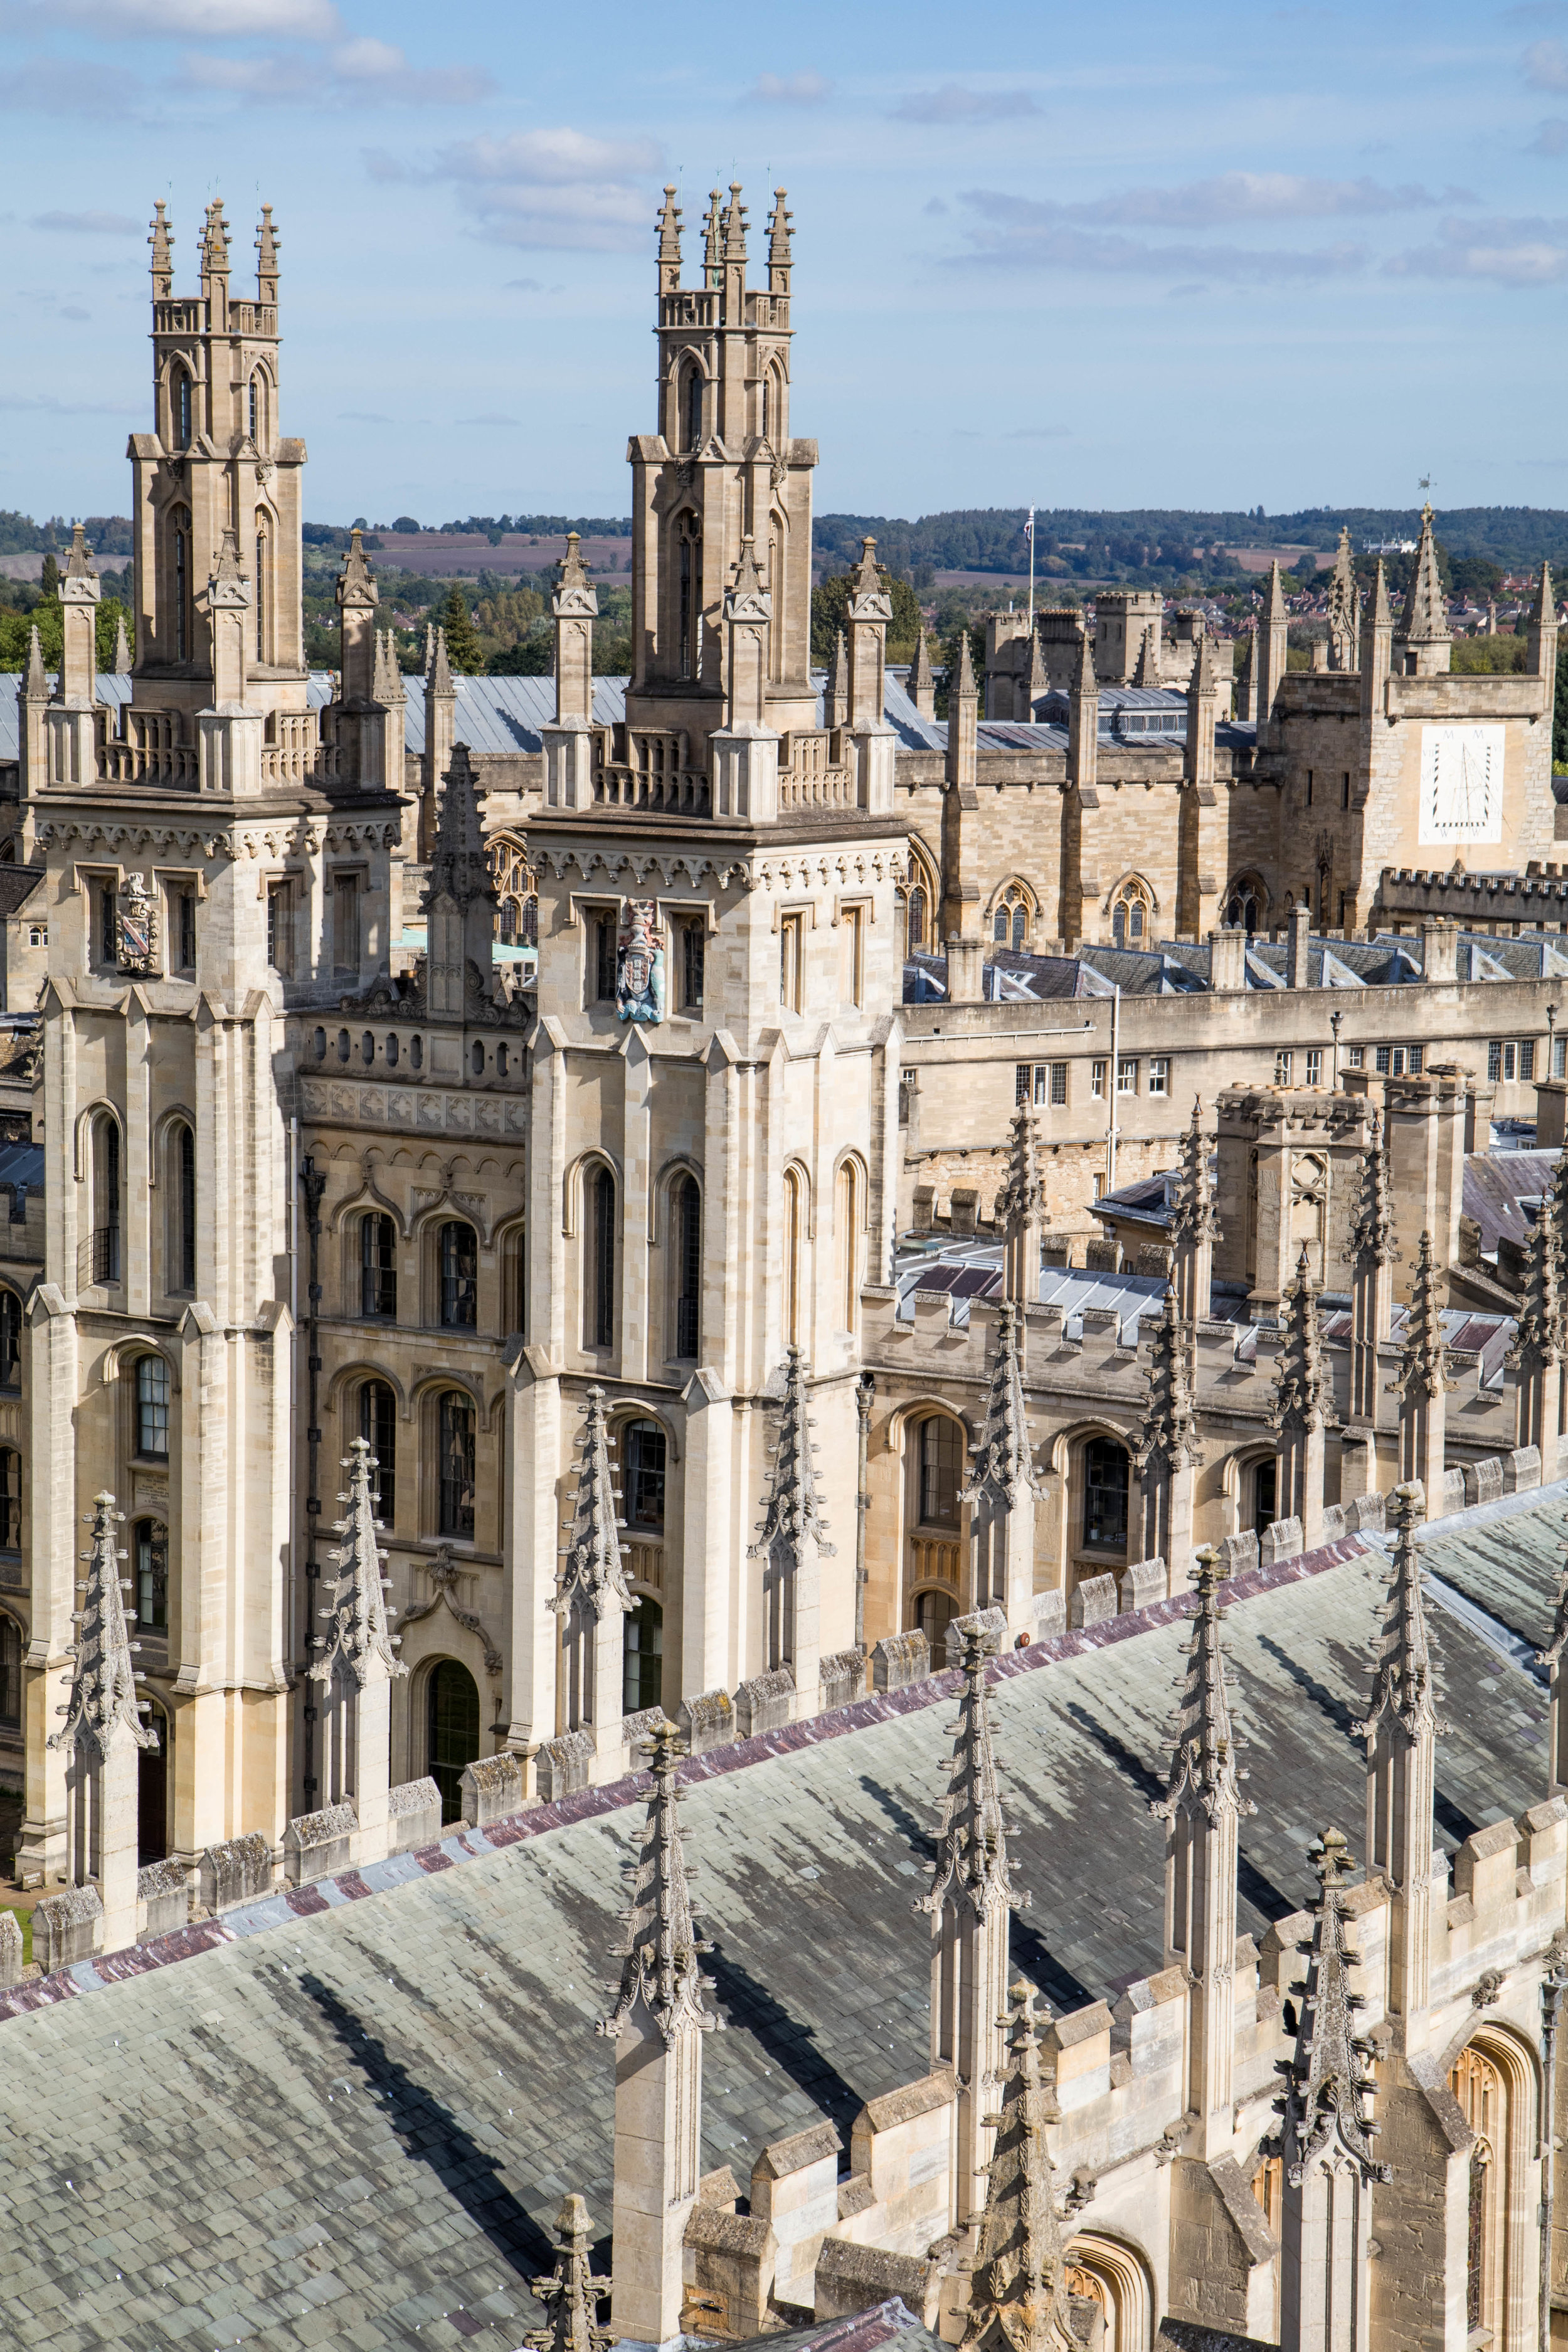 View of All Soul's College from The University Church of St. Mary, Oxford.